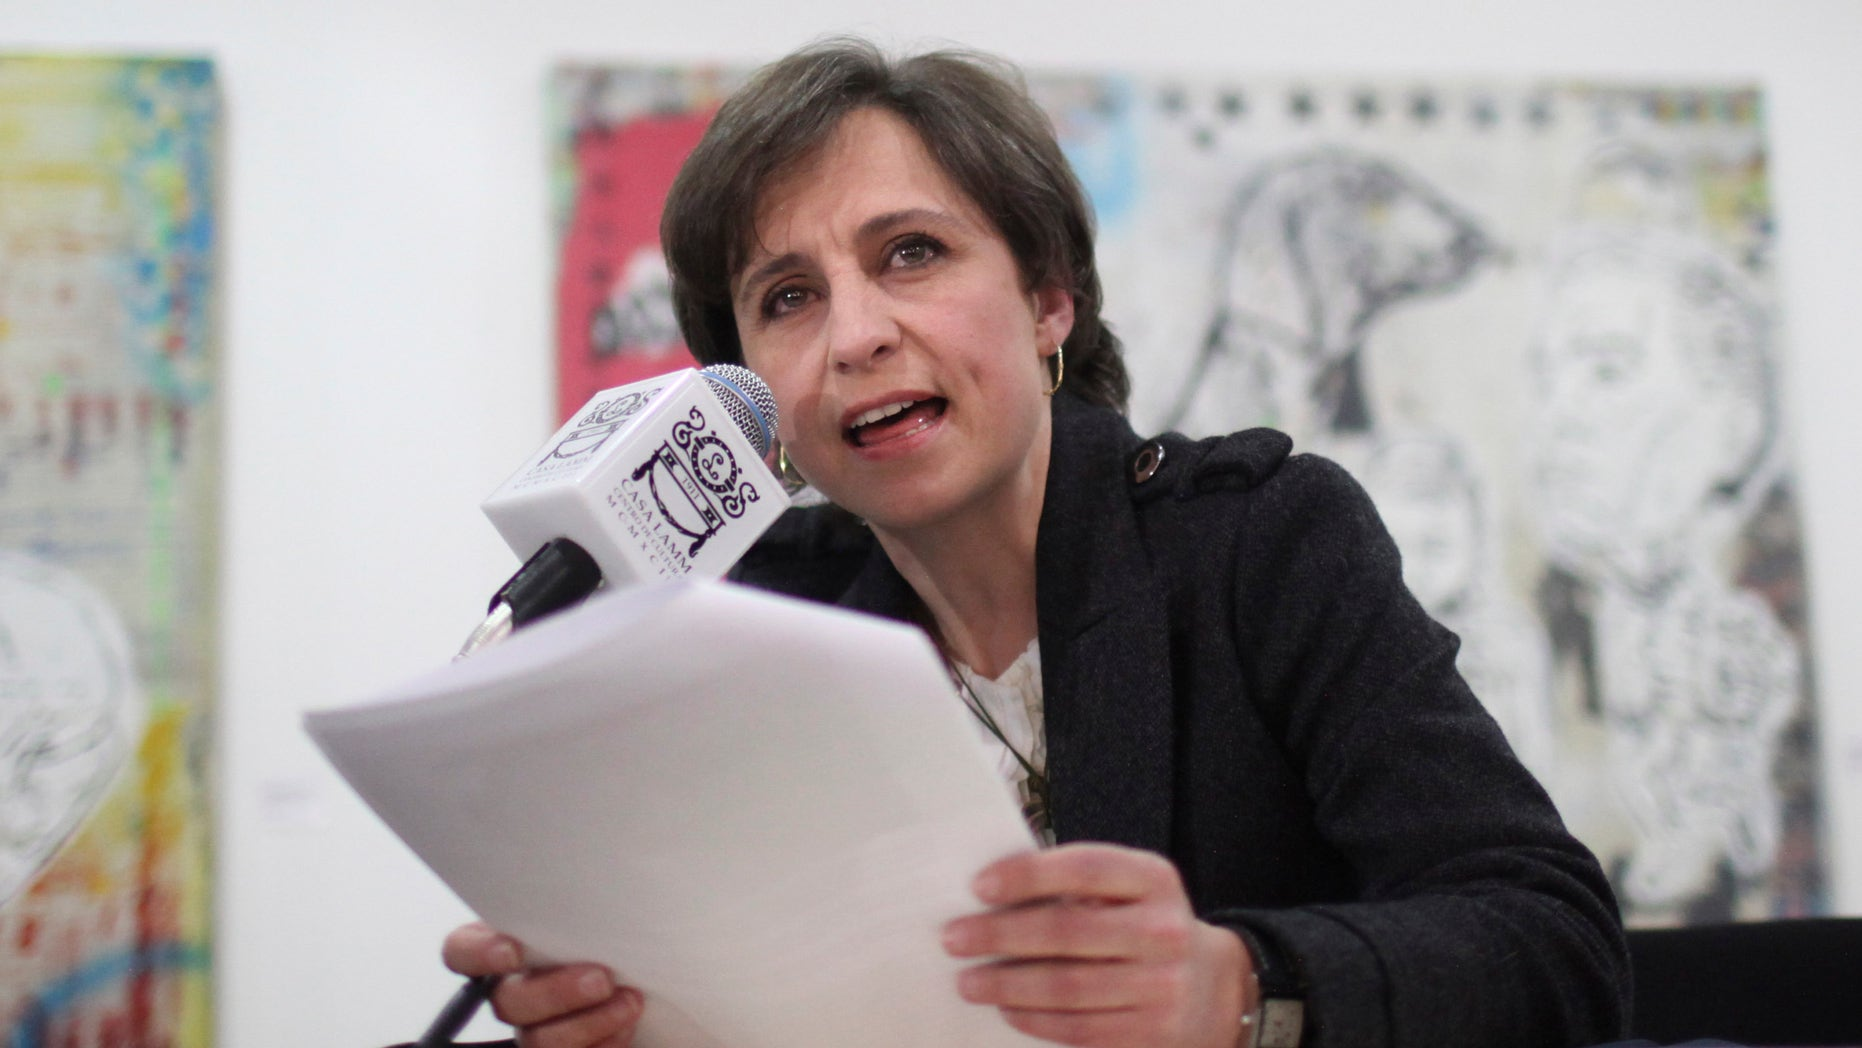 Mexican journalist Carmen Aristegui in a Feb. 9, 2011 file photo.